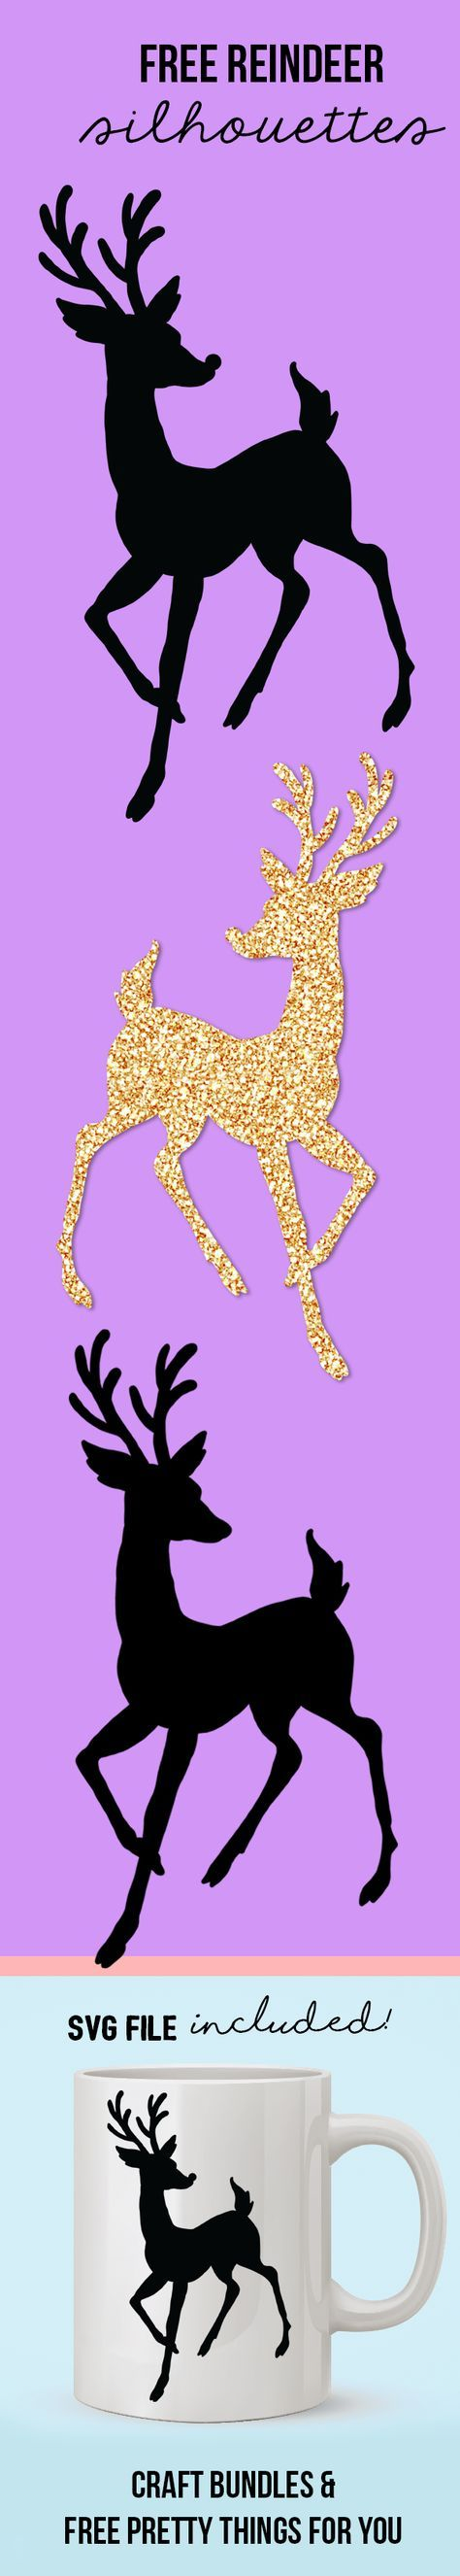 free reindeer silhouette cutting files